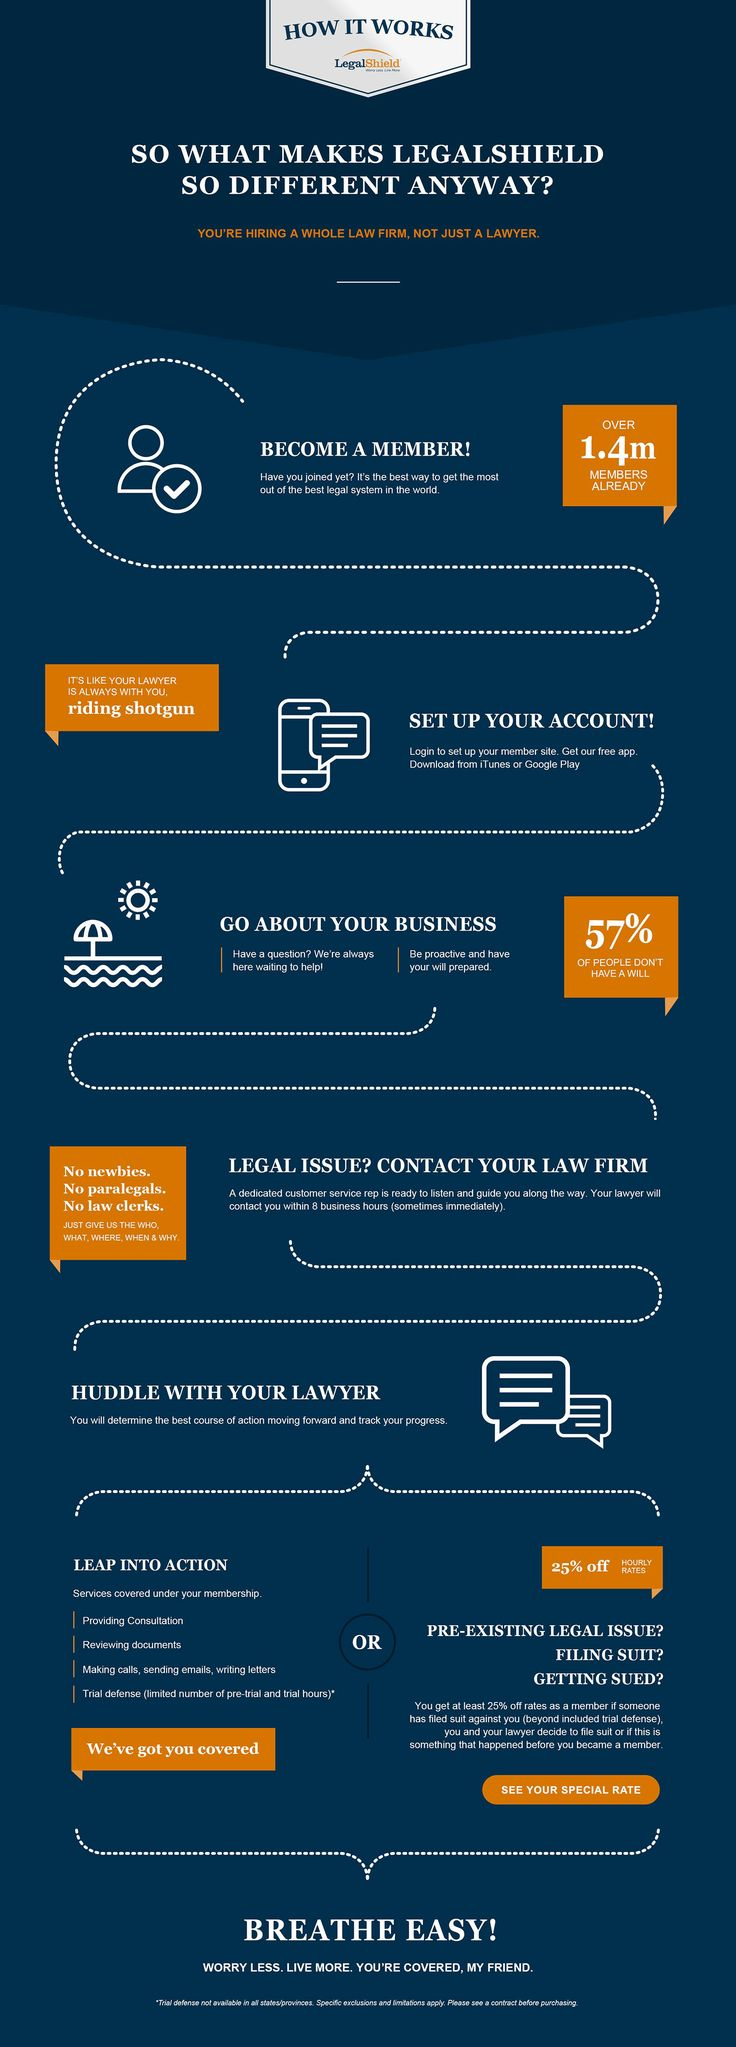 17 Best images about LegalShield on Pinterest | Identity theft ...